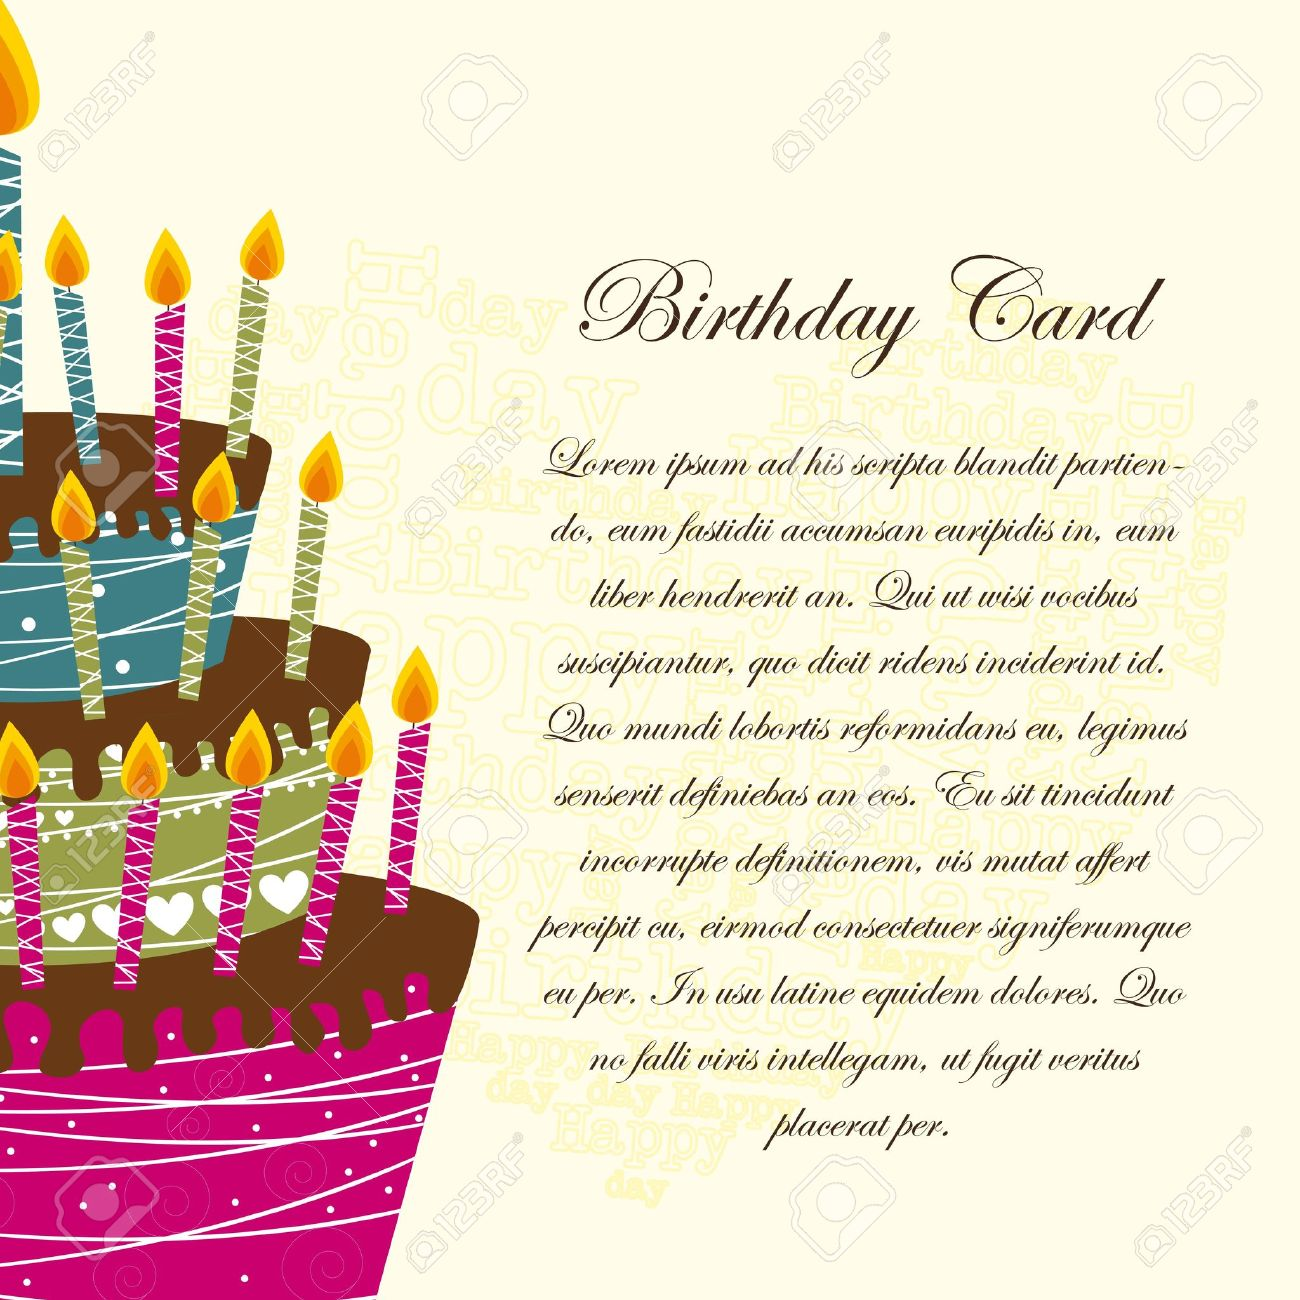 background images for birthday greetings ; 12459227-birthday-card-with-cake-over-beige-background-